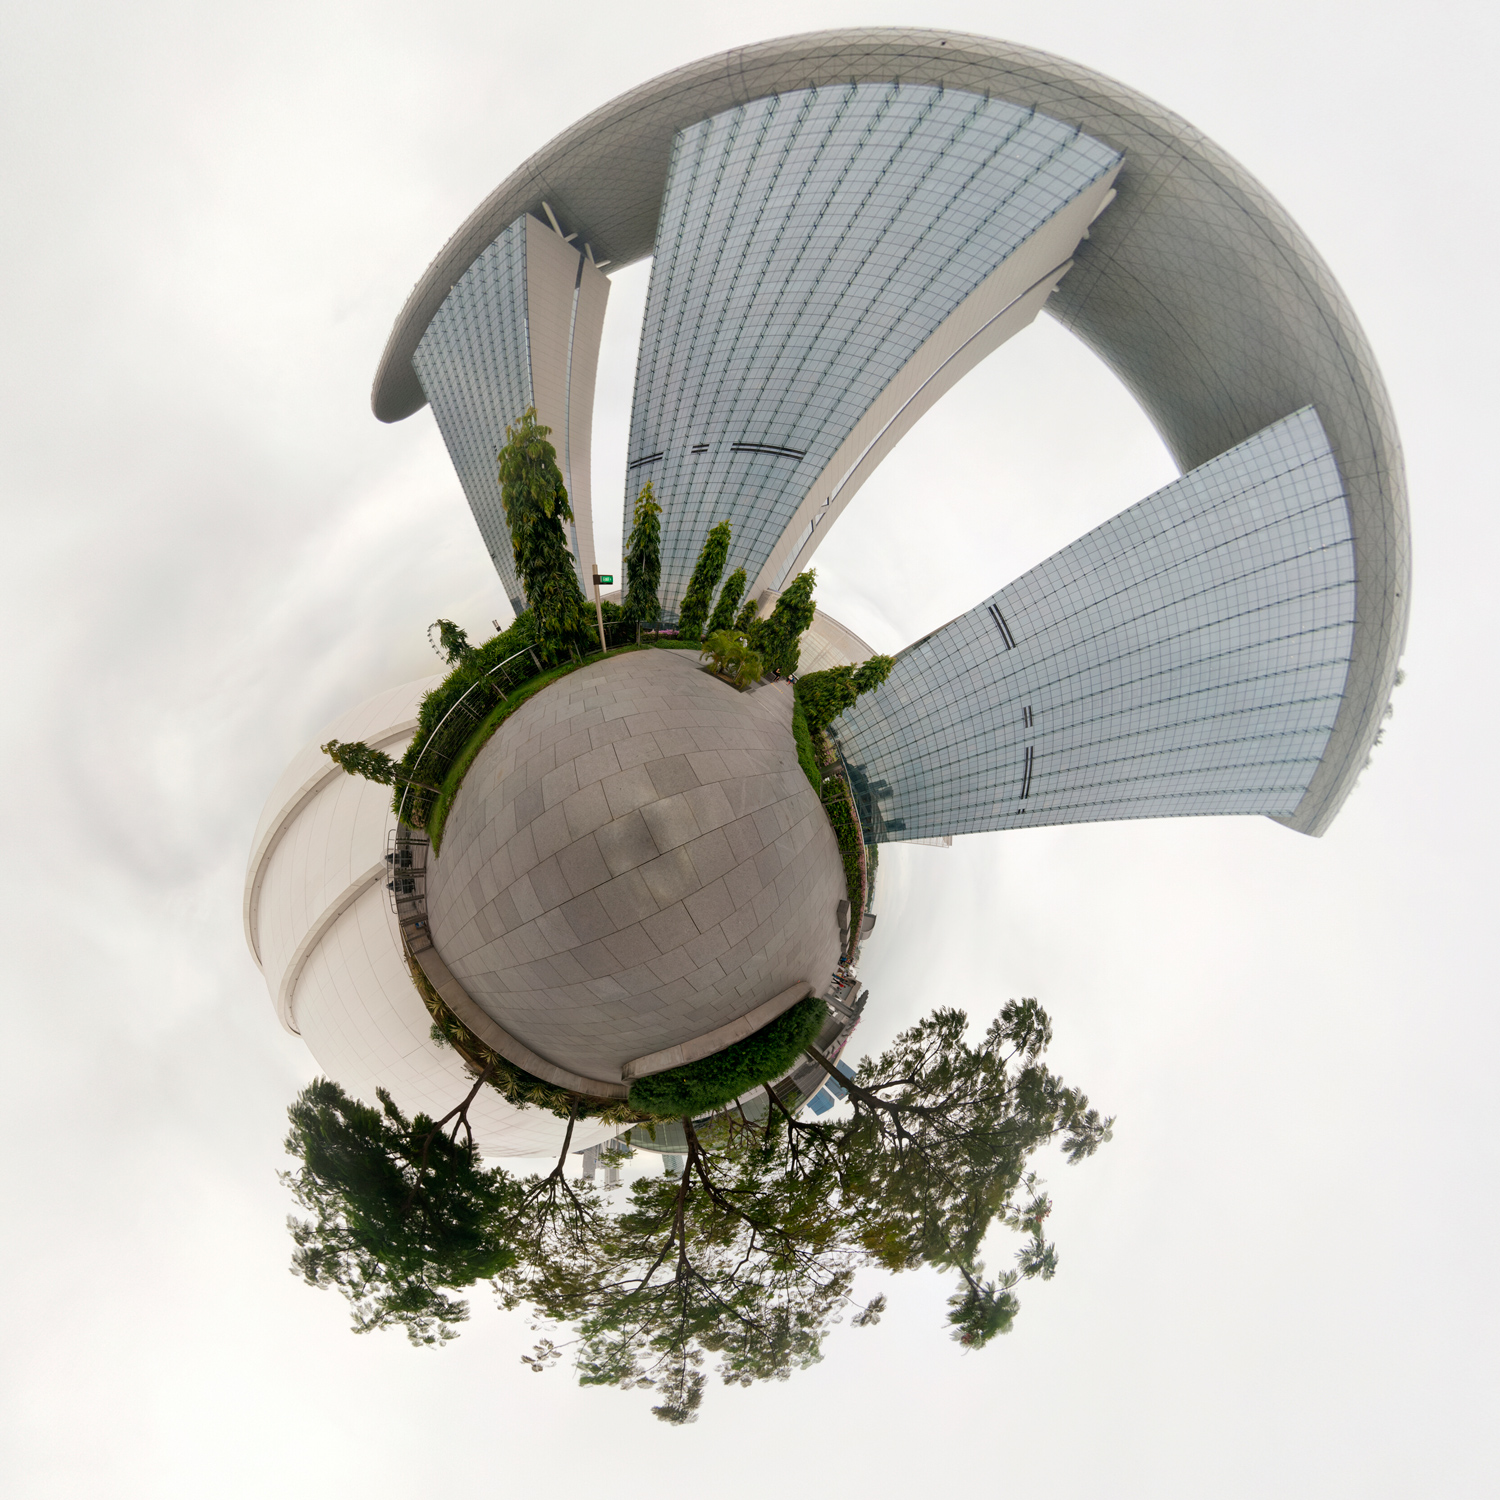 Panorama 134 - Little Planet